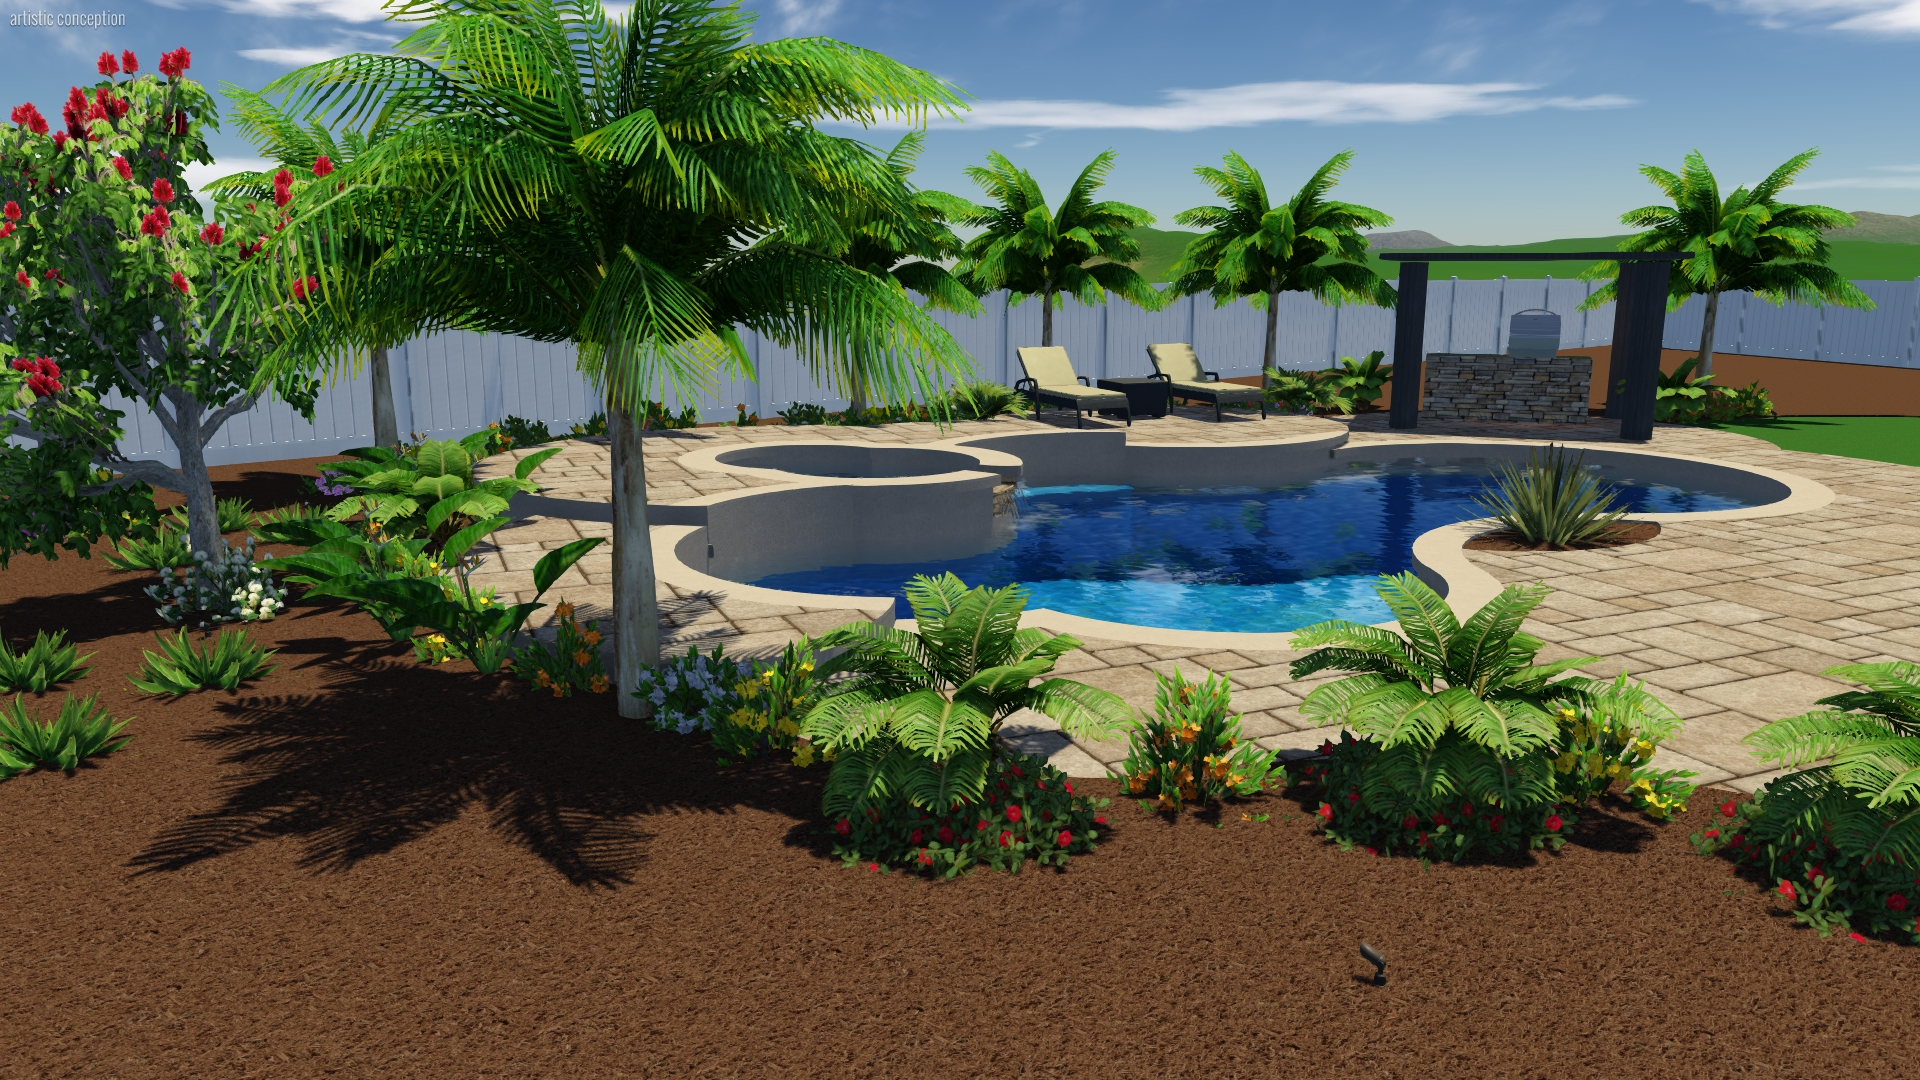 3d designs of pool and landscapes